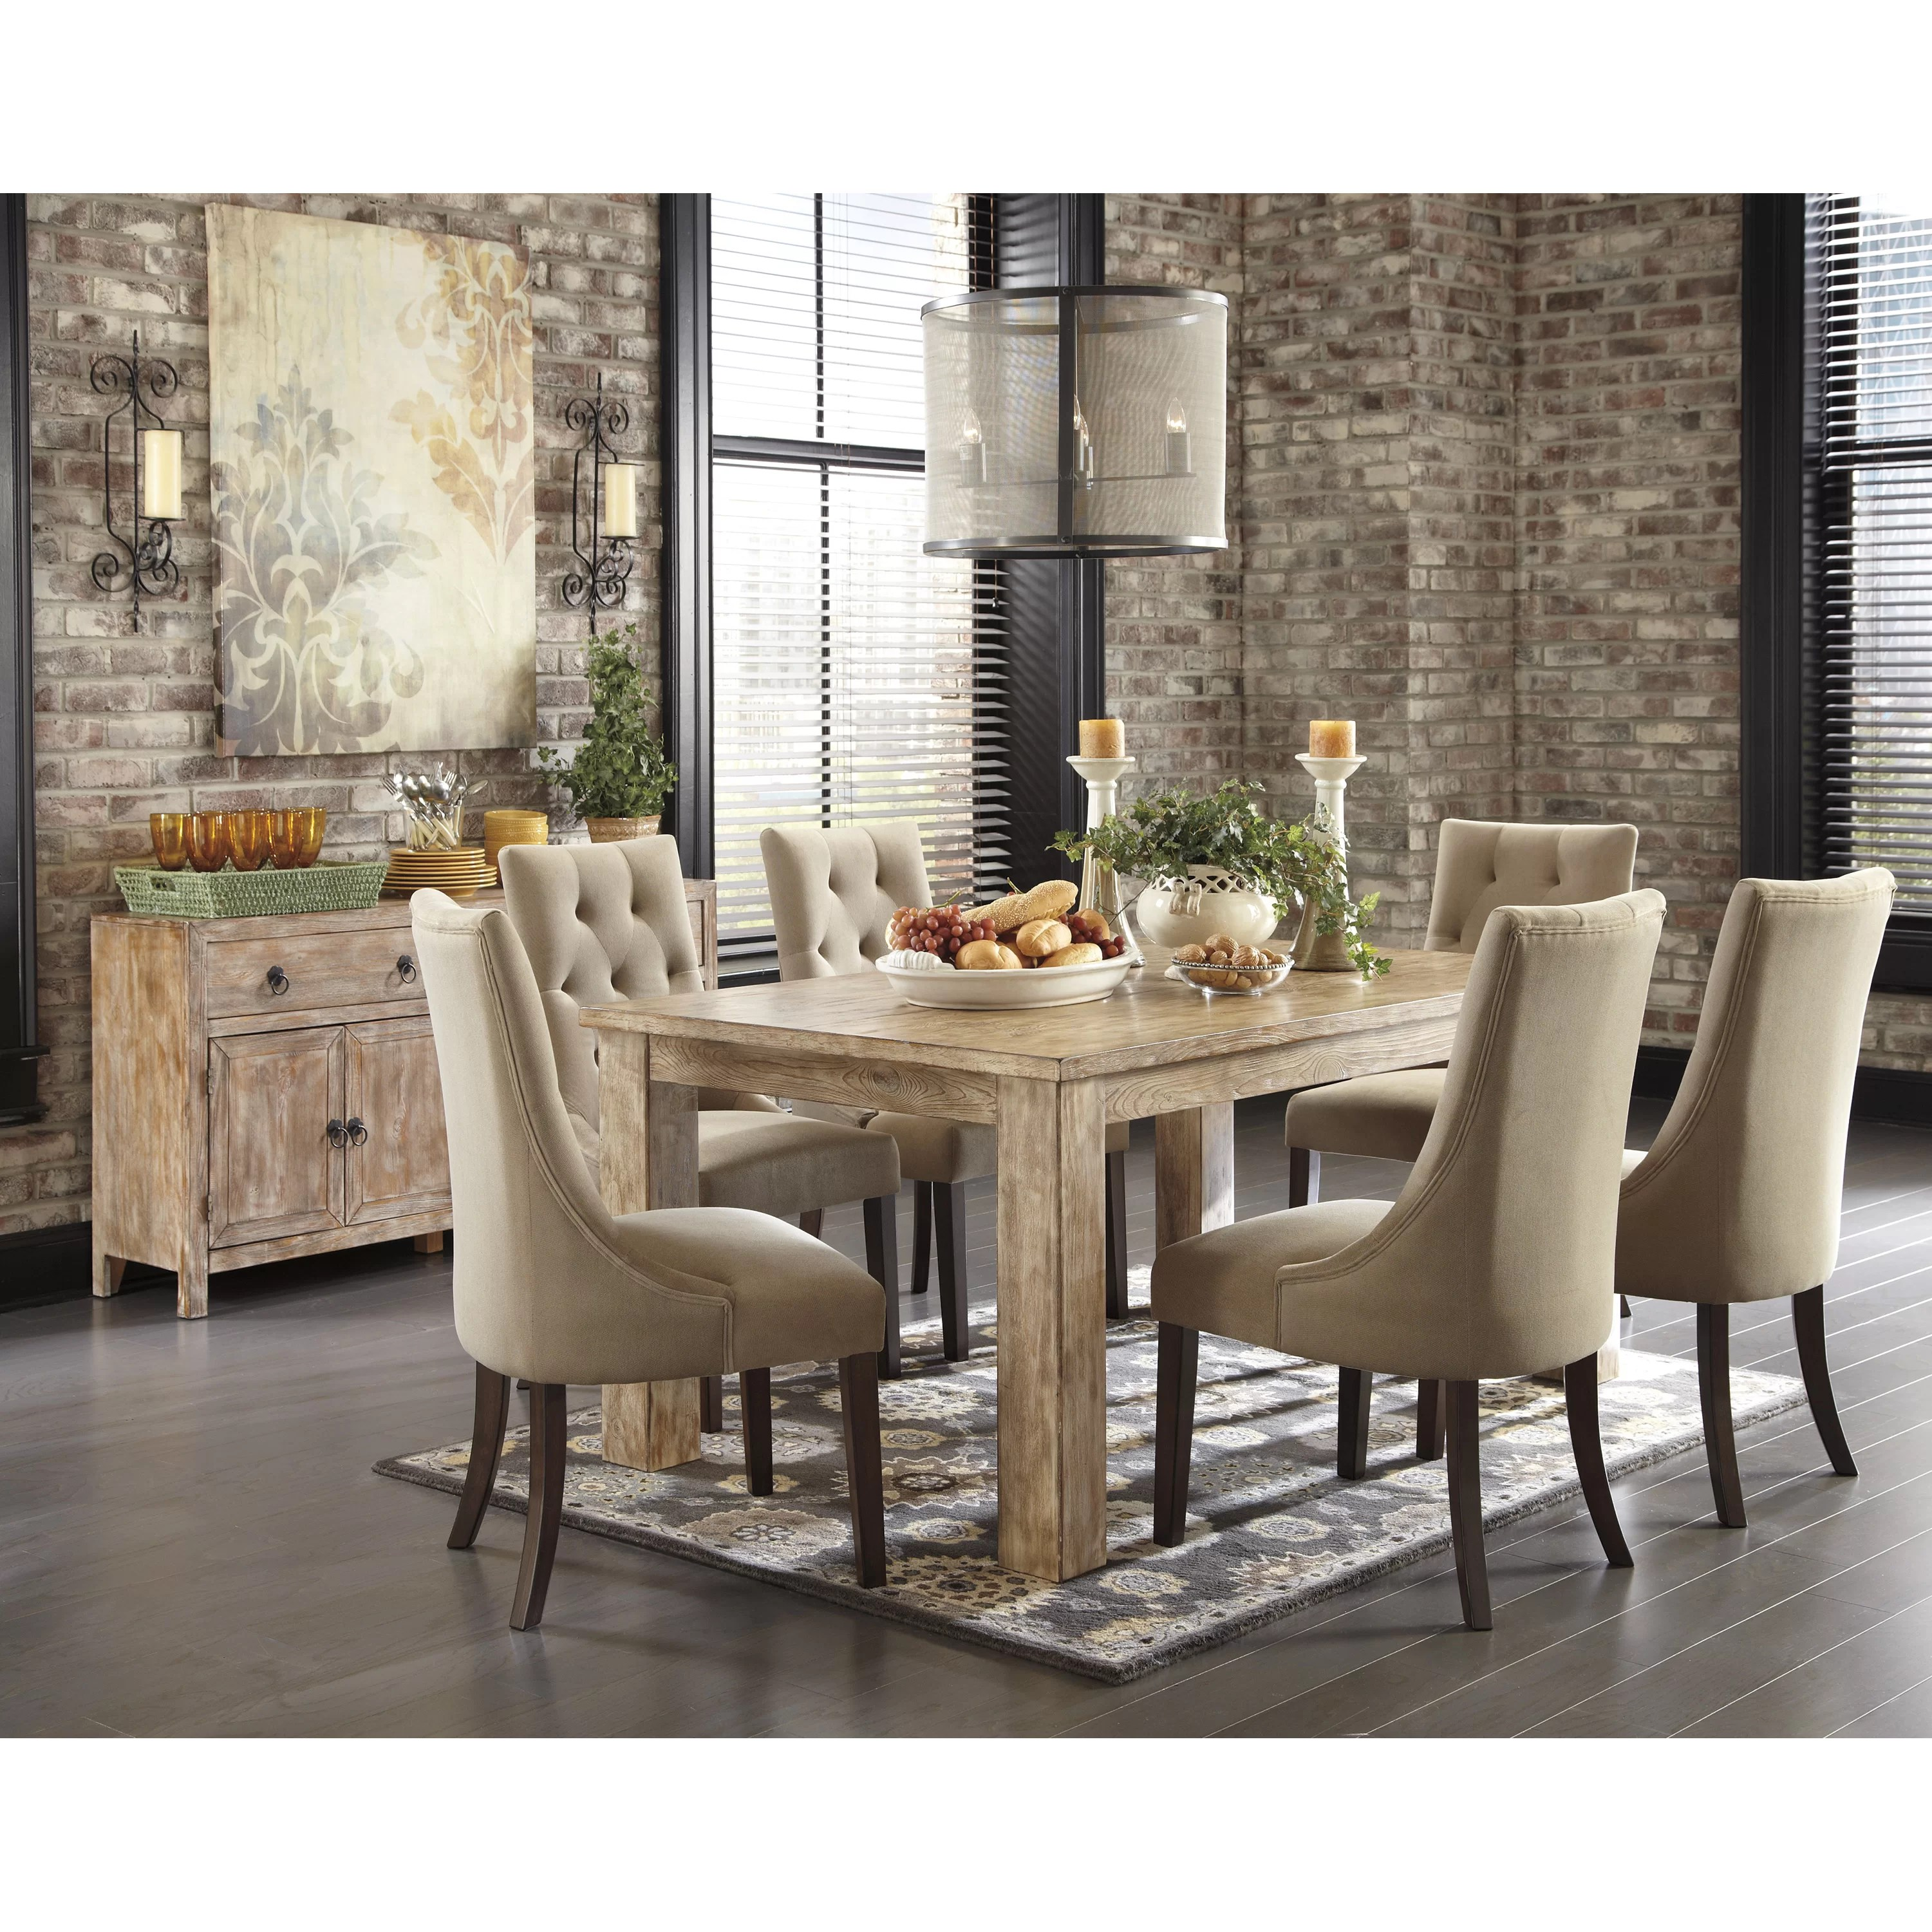 rectangular kitchen dining tables c a~ gray kitchen table QUICK VIEW Castle Pines Dining Table